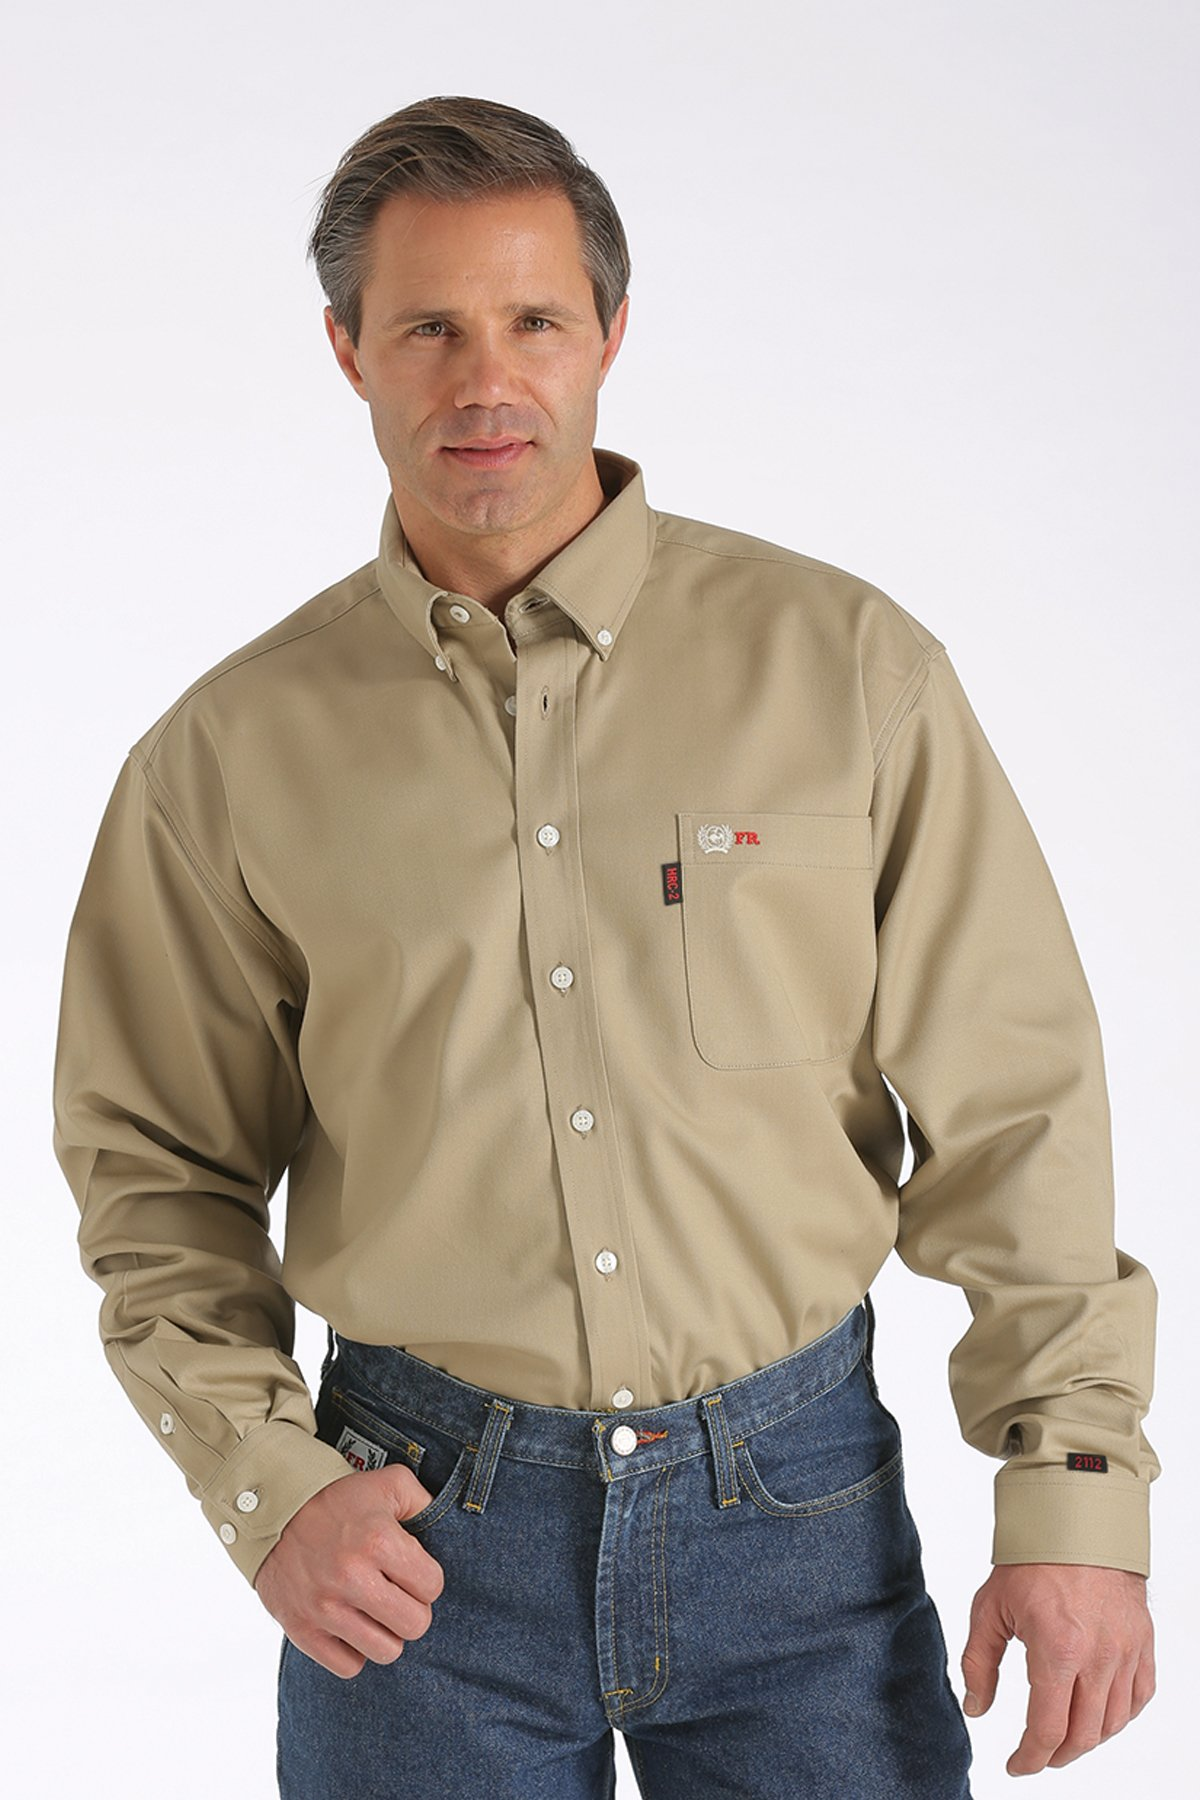 CINCH FR WRX KHAKI WORK SHIRT-Cinch WRX